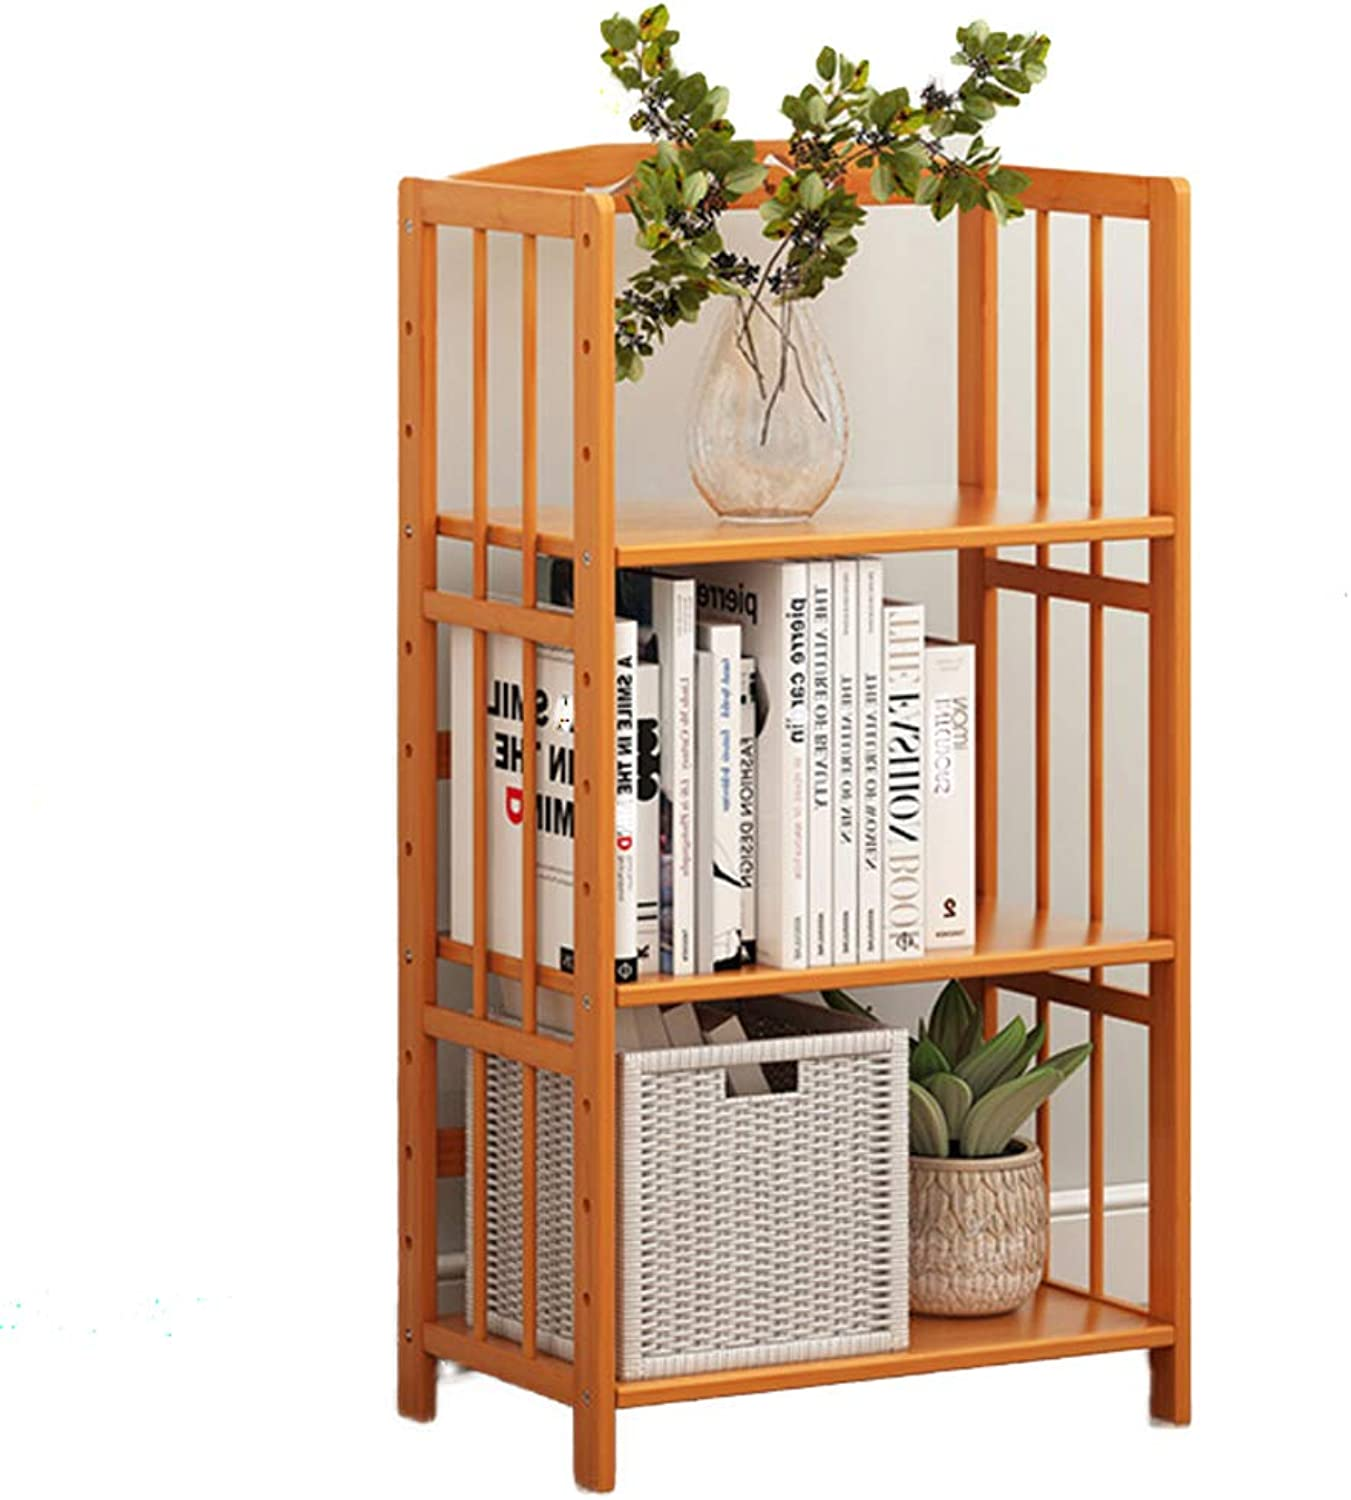 Multifunctional Bamboo Bookshelf, 2-6 Tier Thickened Storage Organizer Compact Modern Floor-Standing Storage Organizer for Home or Office -B 50x25x96cm(20x10x38)